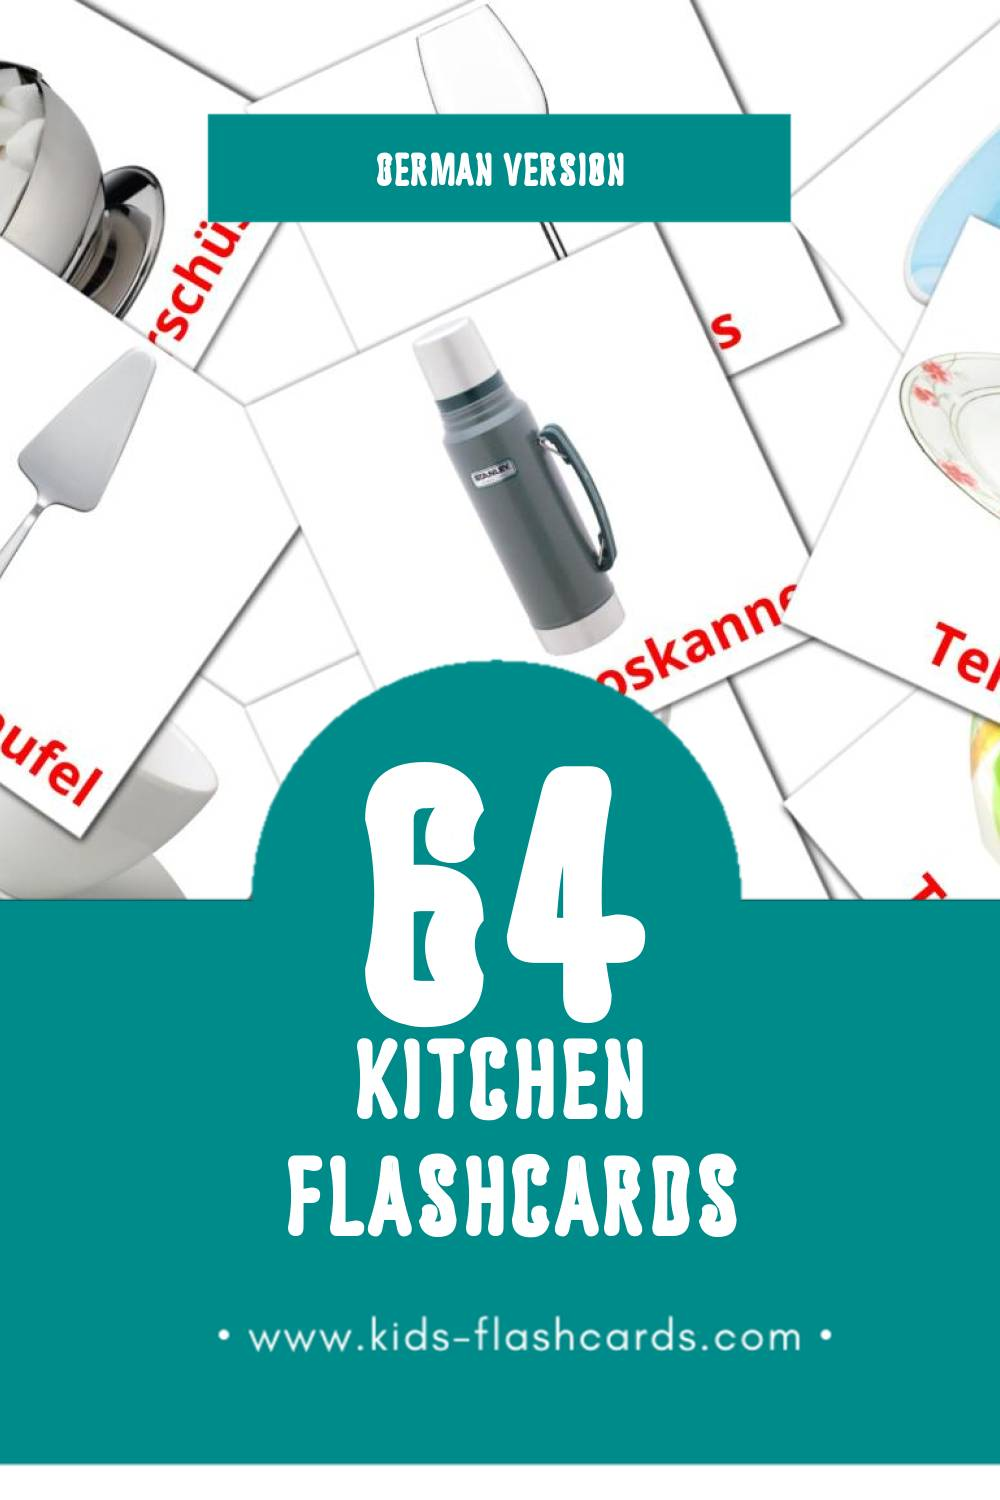 Visual Küche Flashcards for Toddlers (64 cards in German)